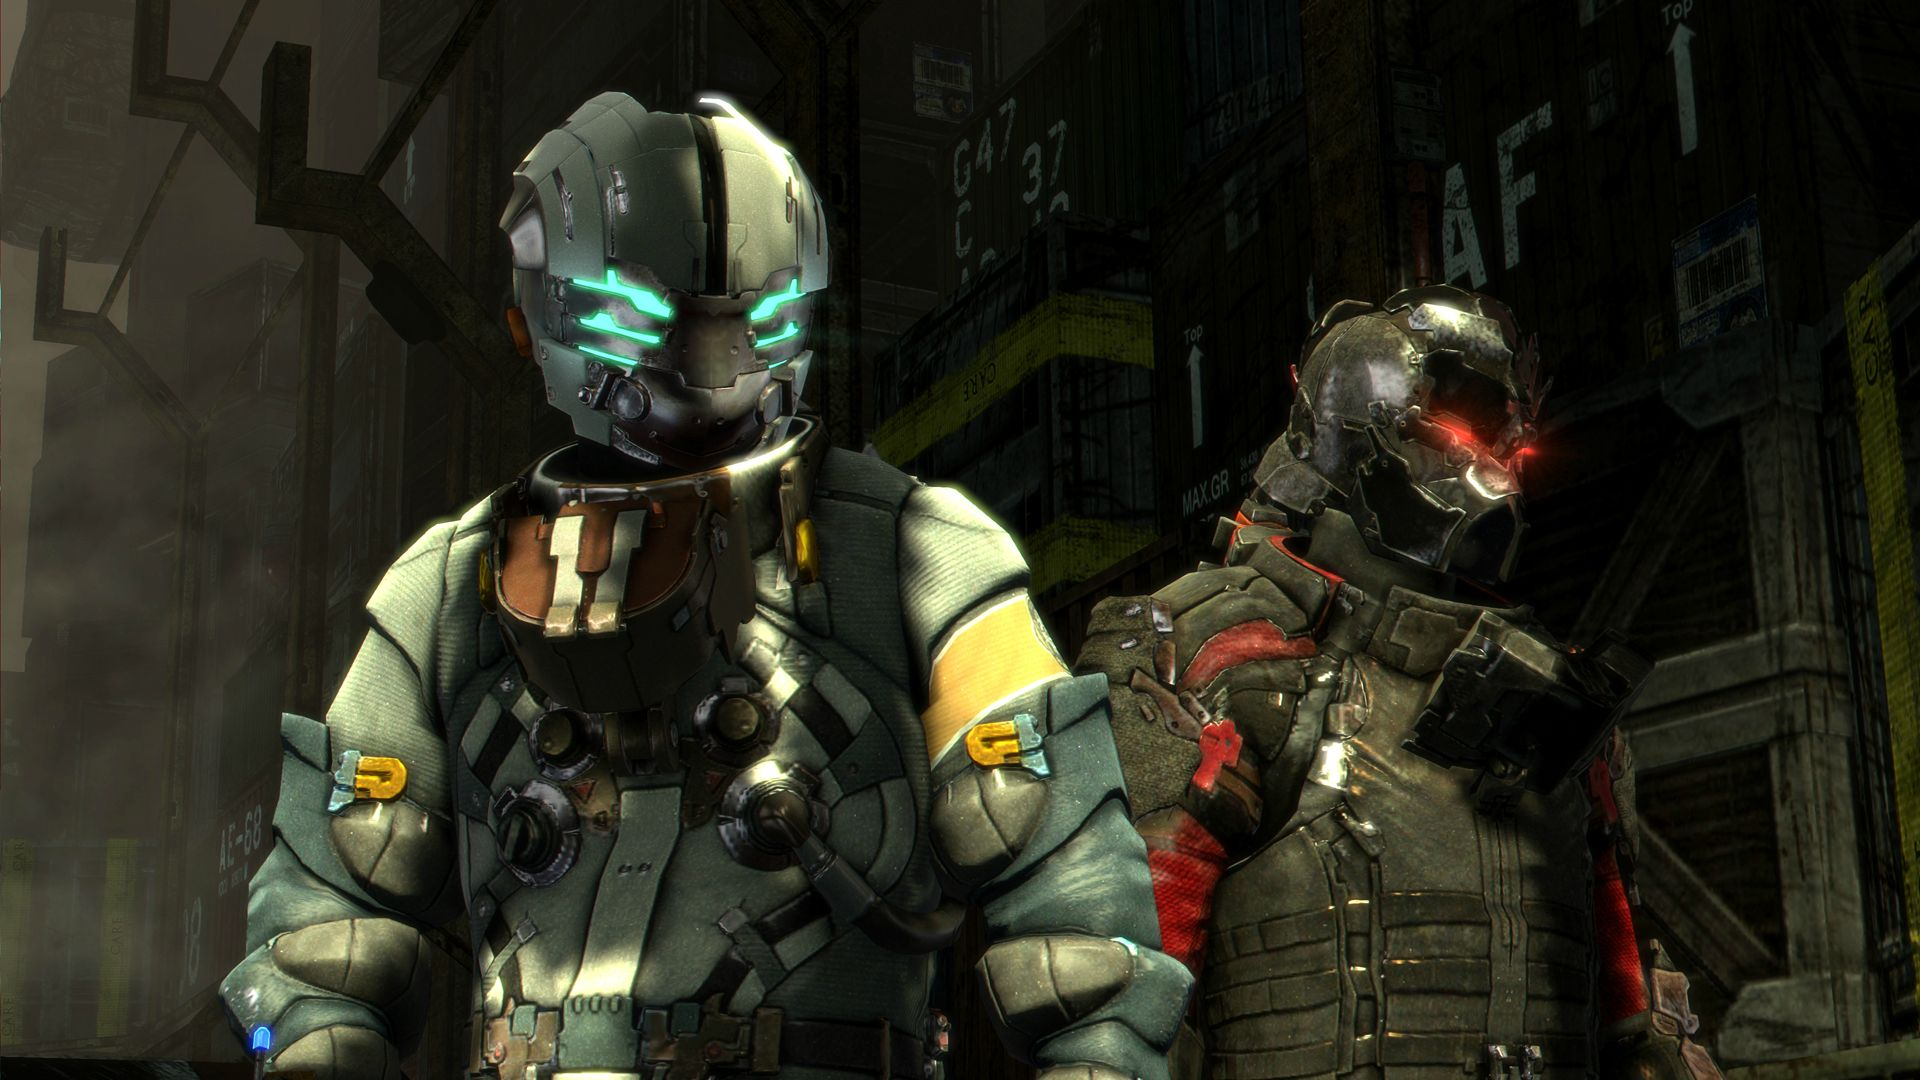 Dead Space 3 New Screens Show Co Op Other Human Characters And One Necromorph GamersPack